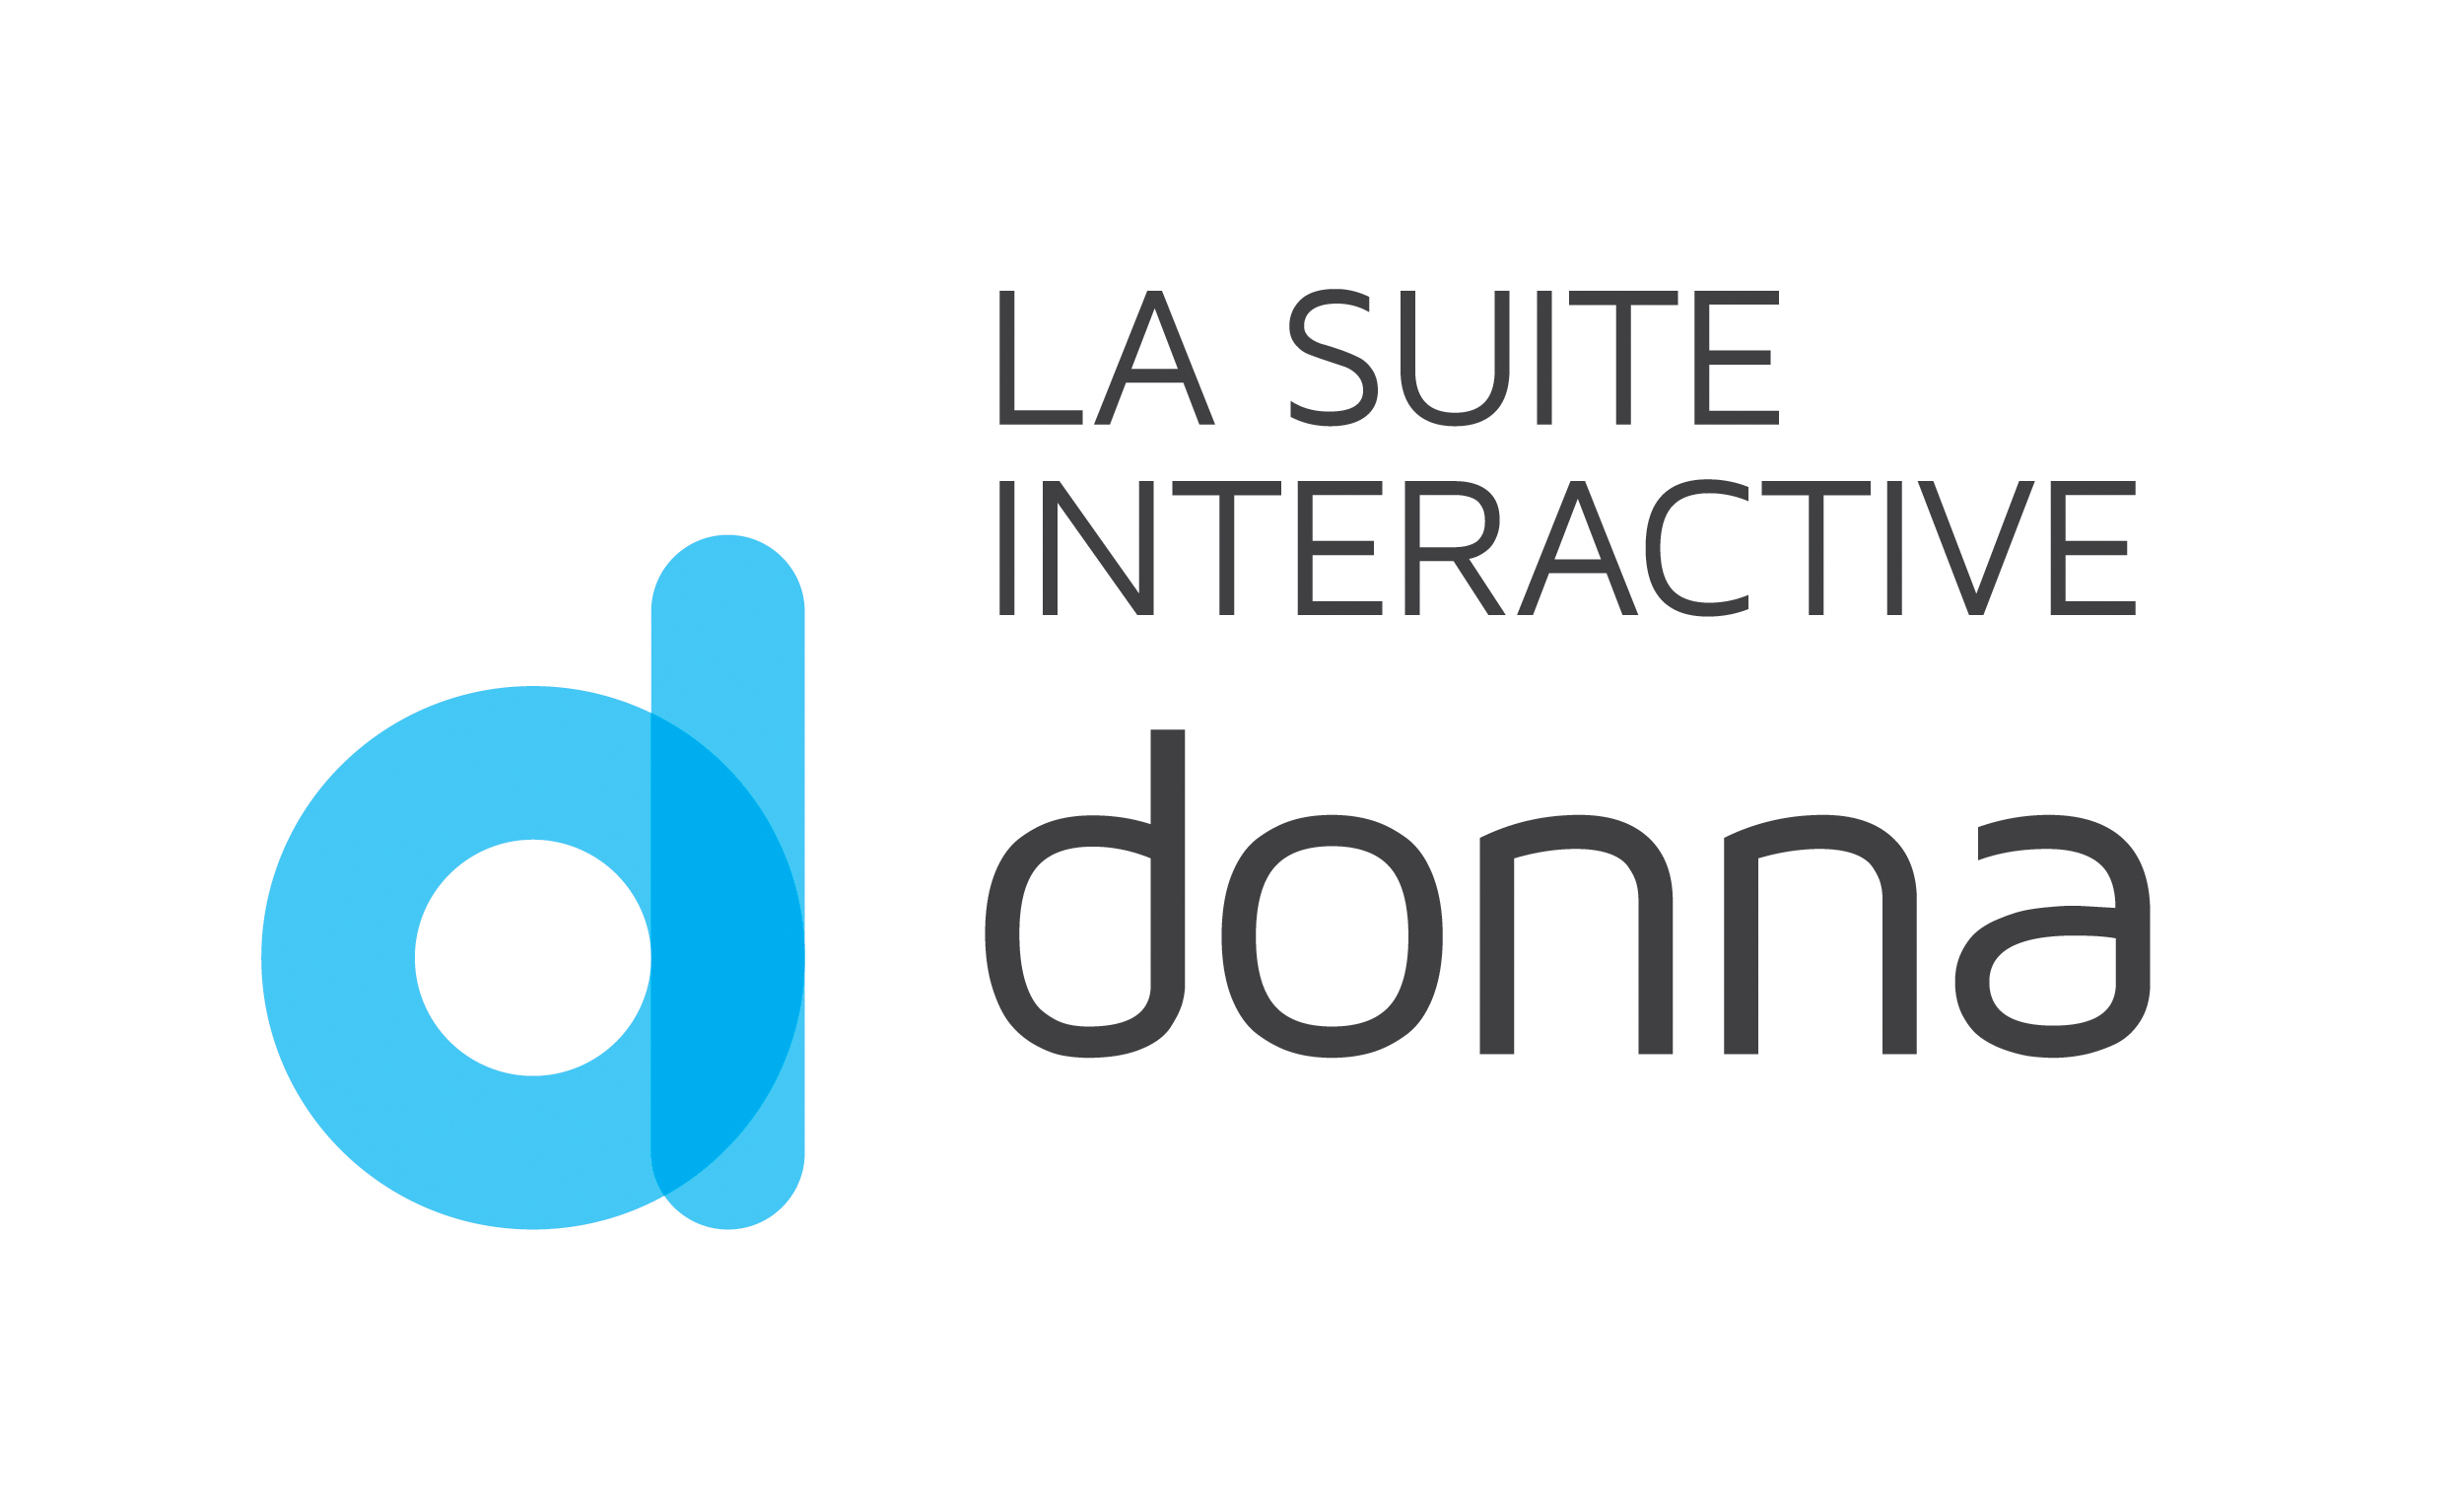 Suite interactive donna